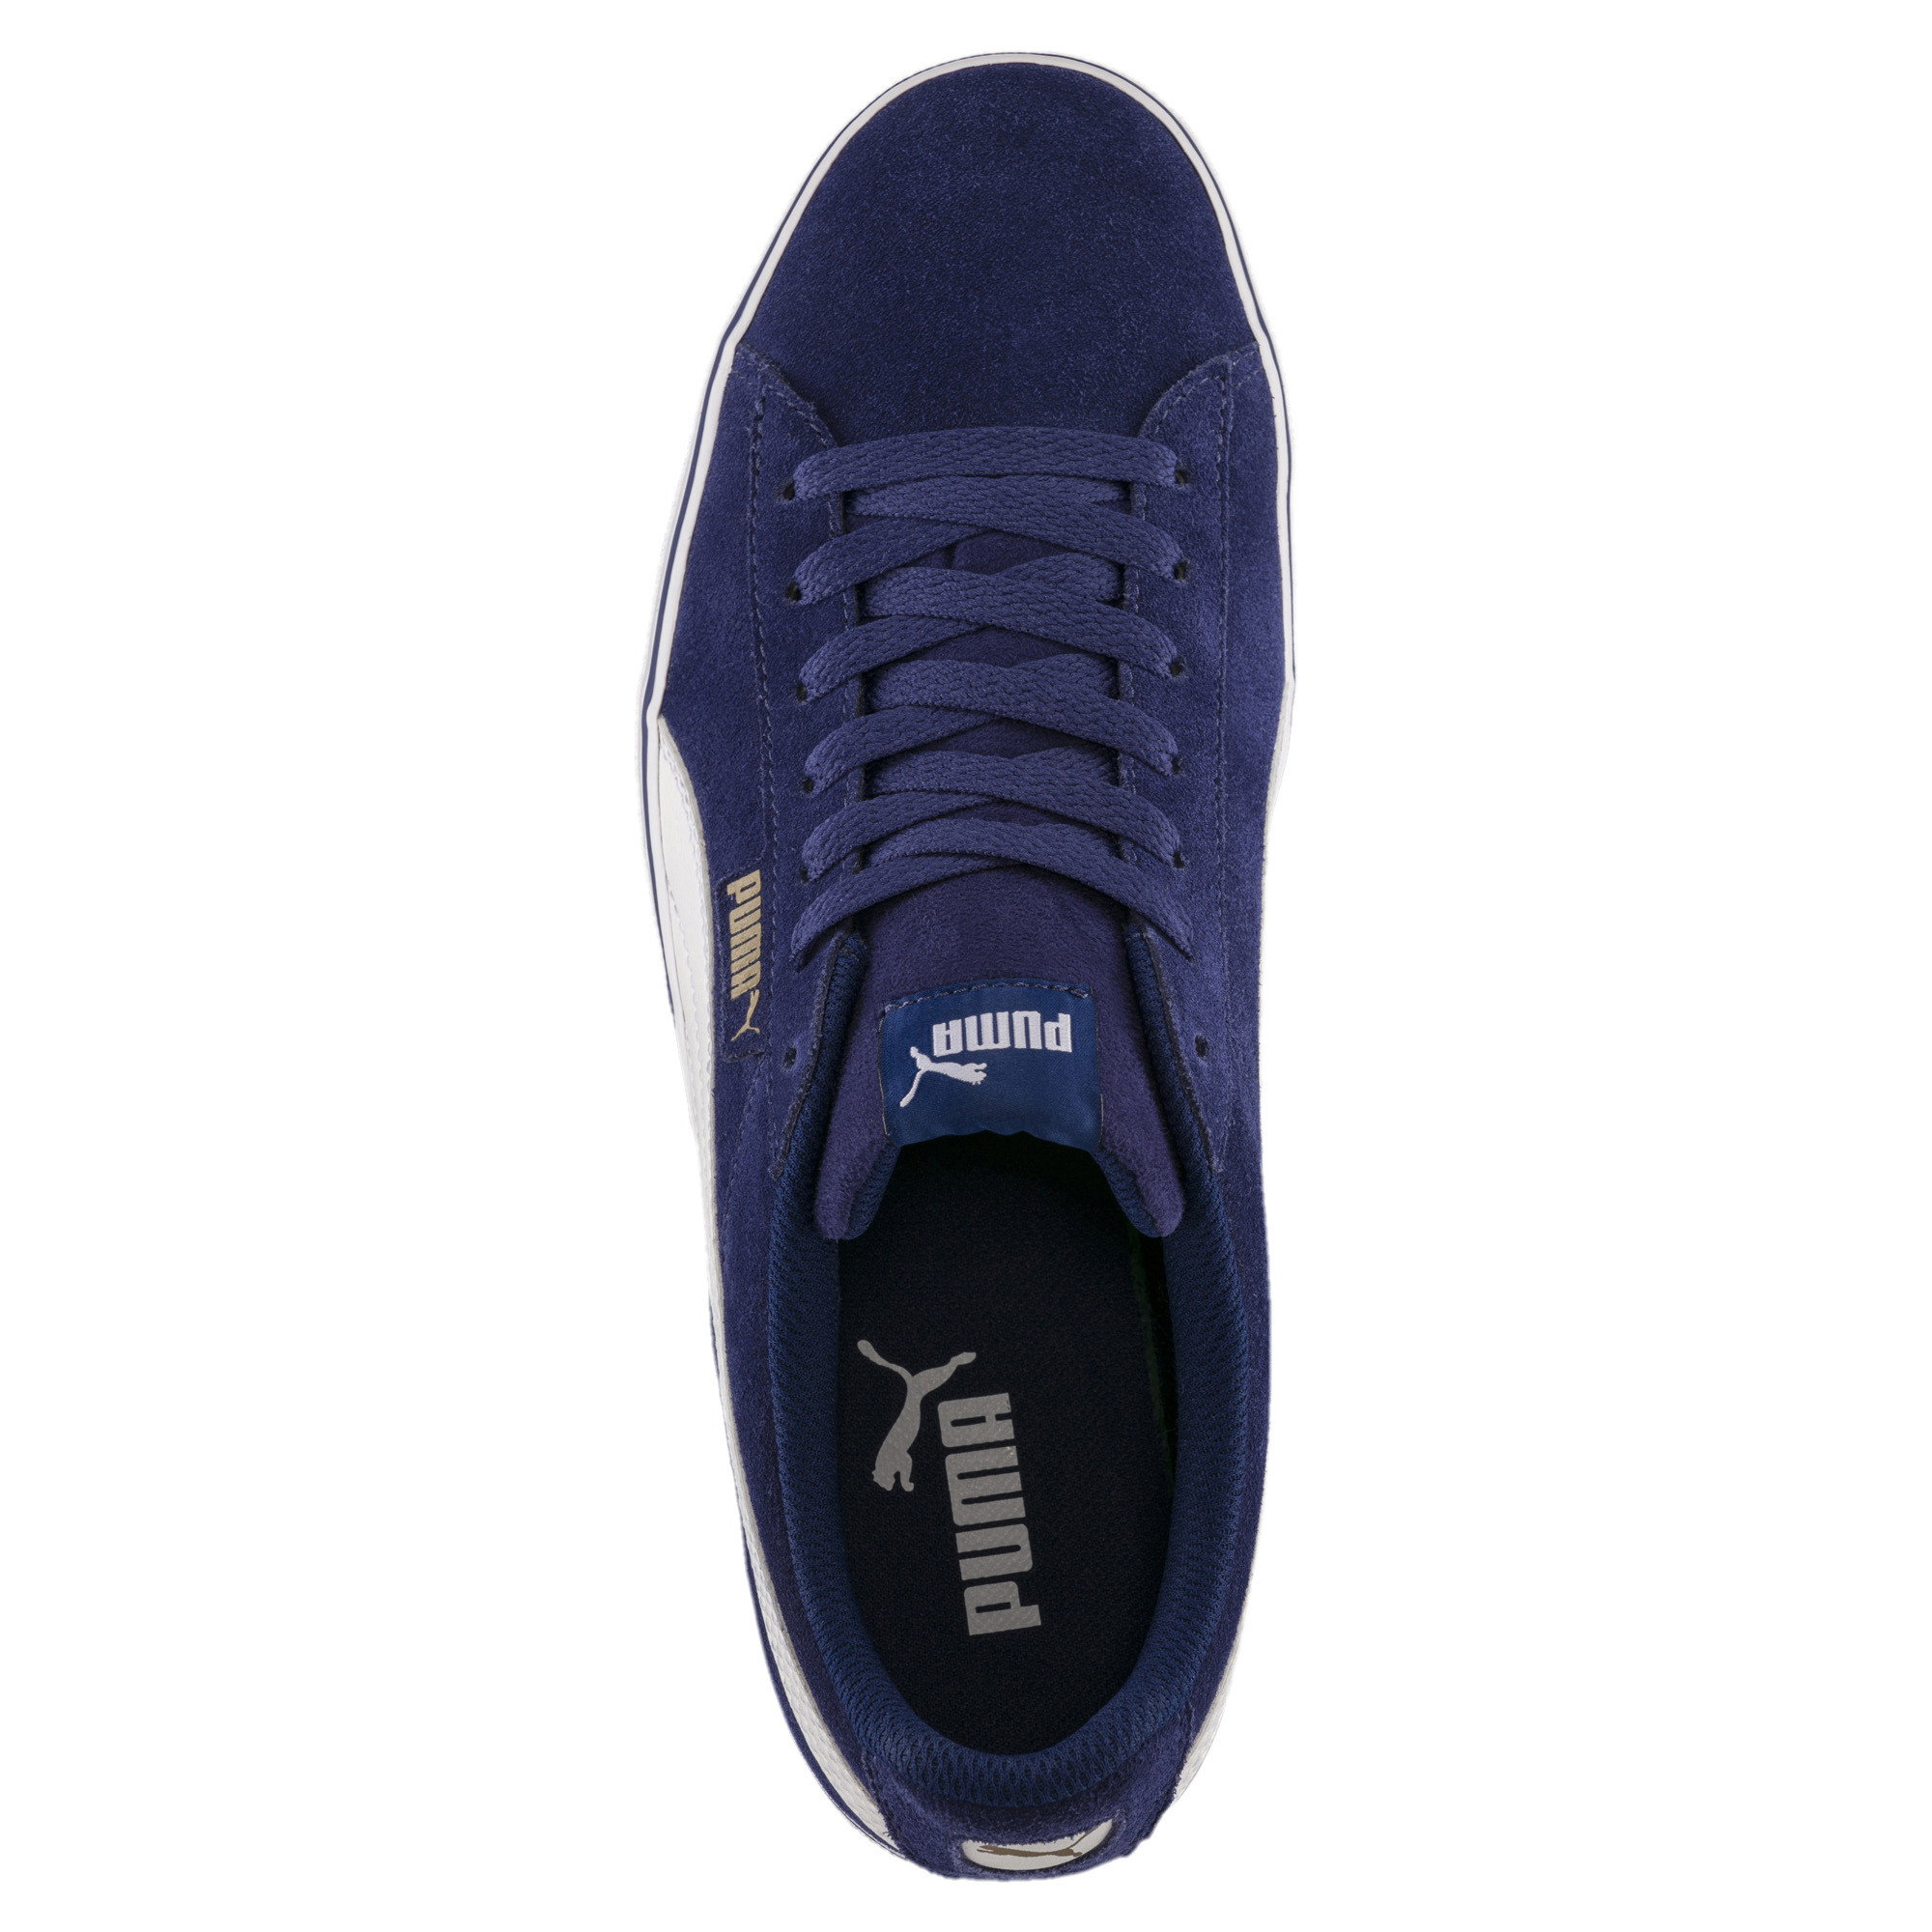 PUMA-Puma-1948-Vulc-Men-s-Sneakers-Men-Shoe-Basics thumbnail 11